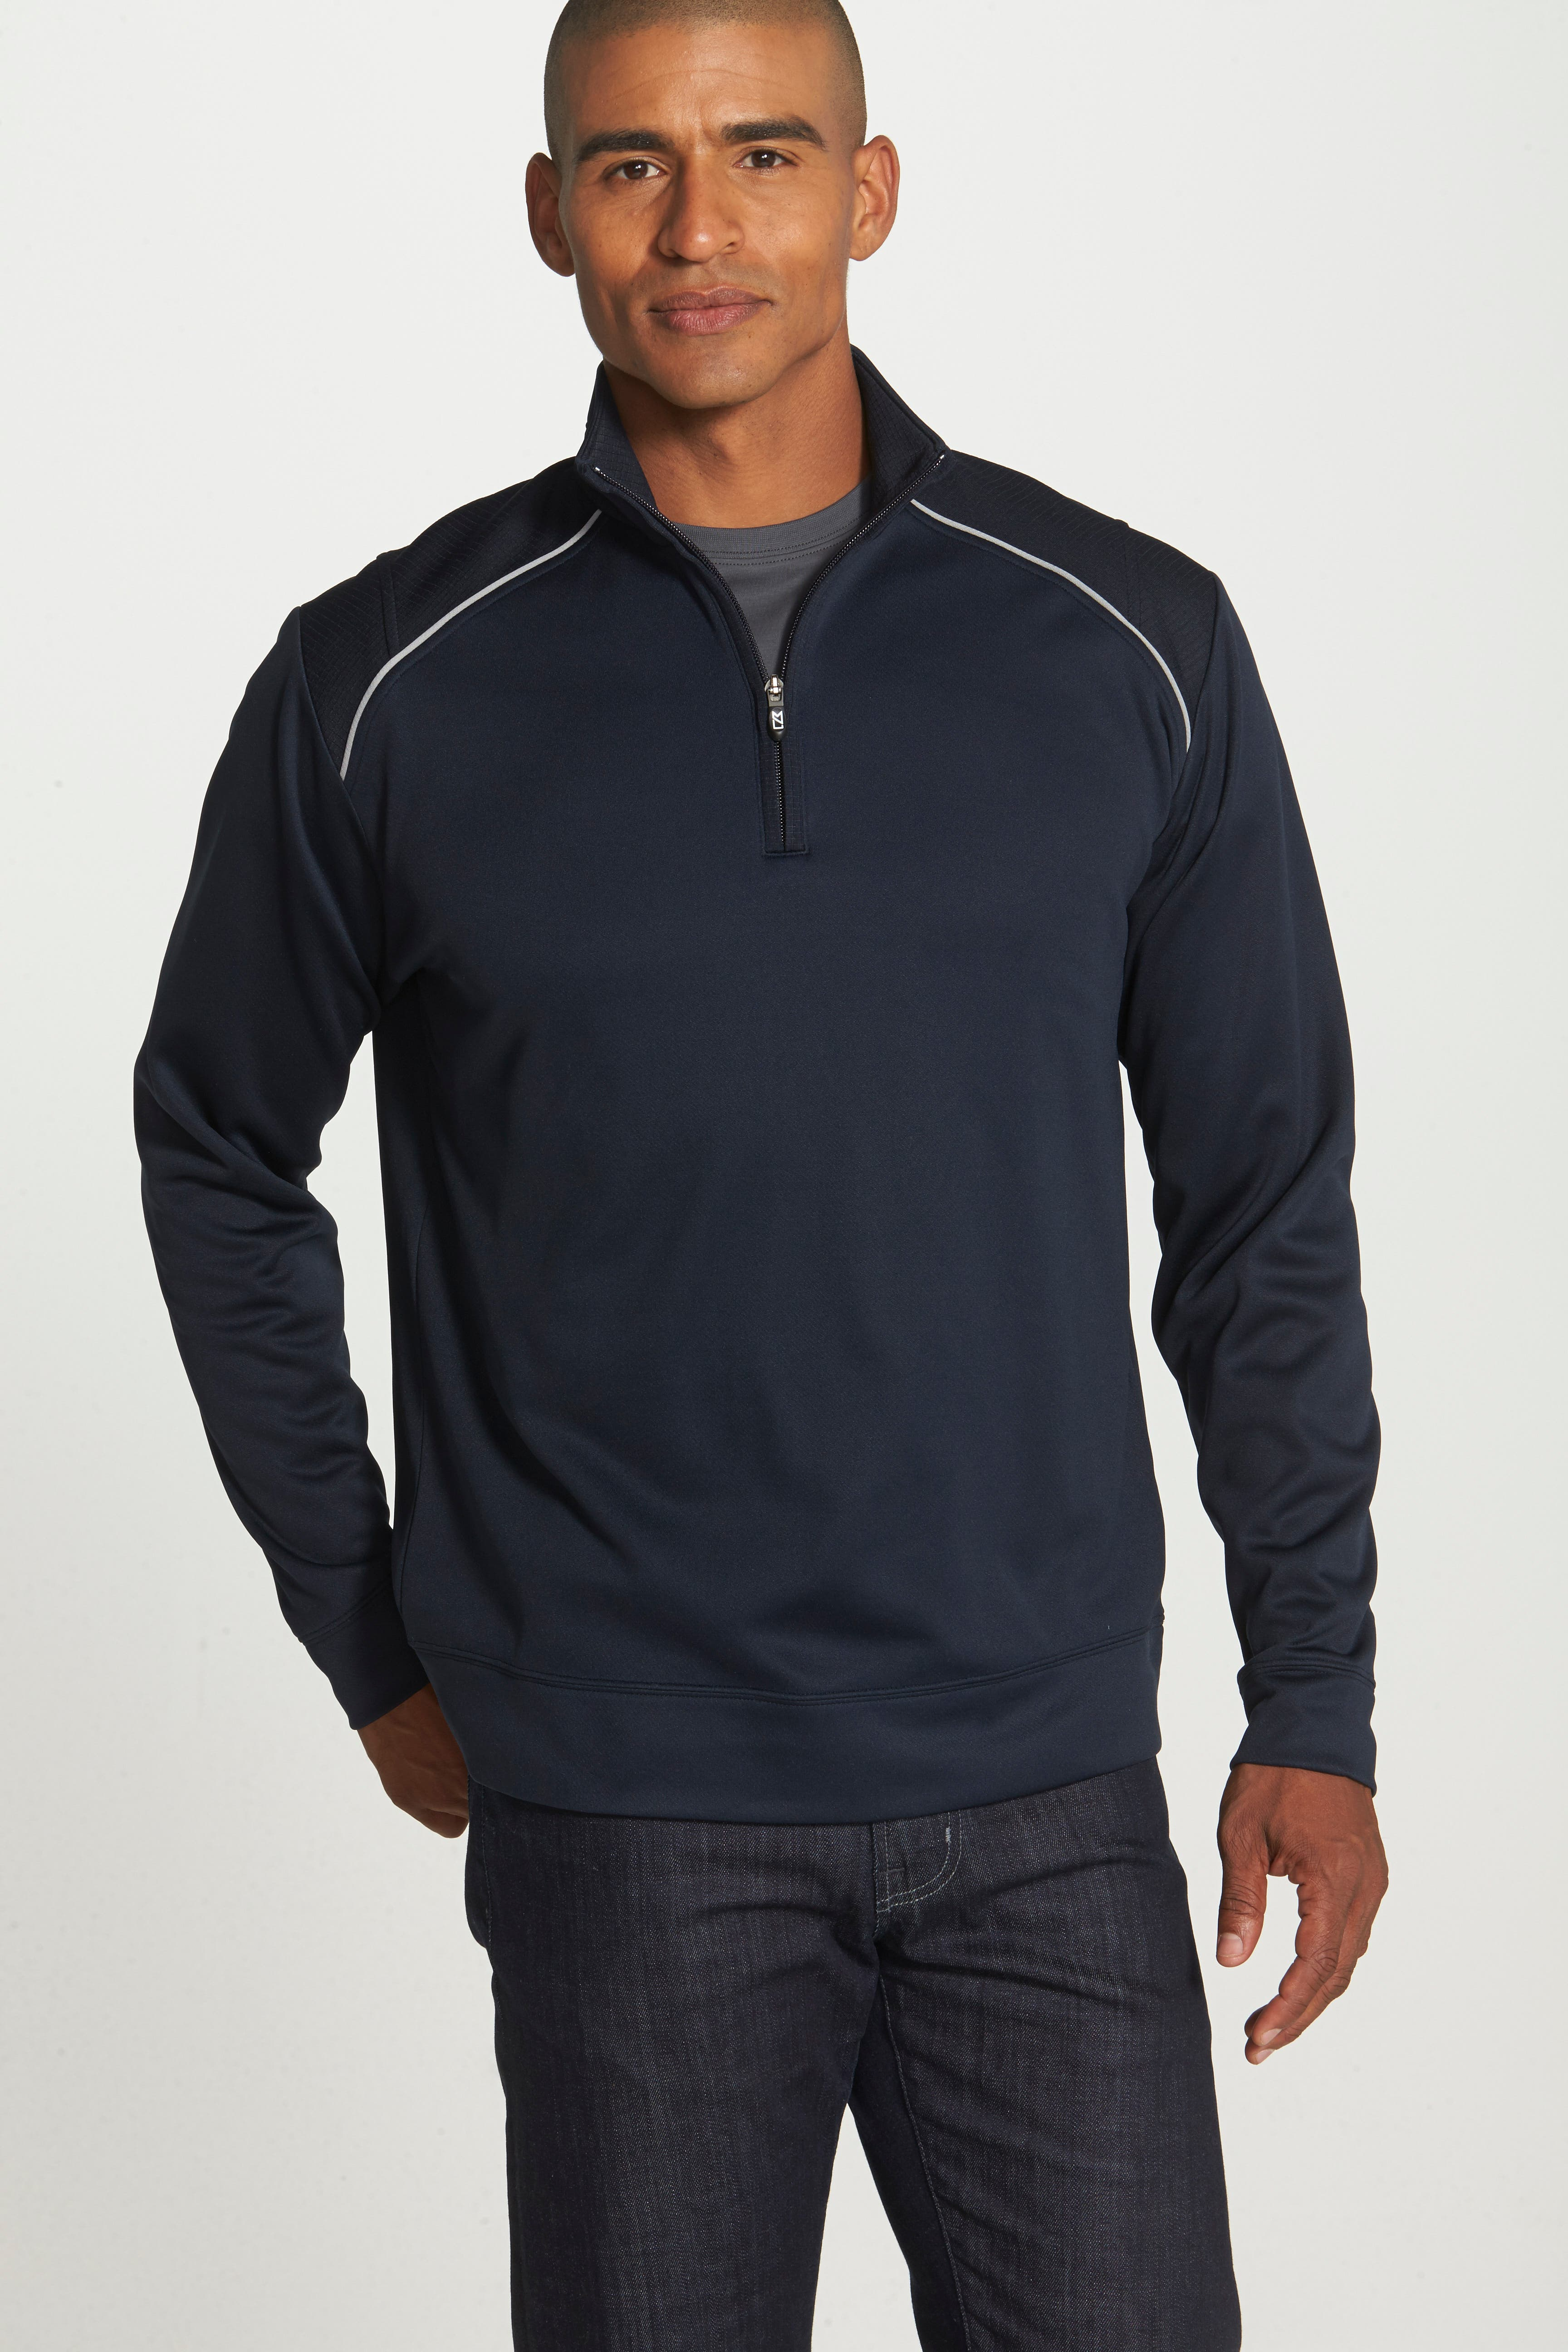 Ridge WeatherTec Wind & Water Resistant Pullover,                             Alternate thumbnail 4, color,                             NAVY BLUE